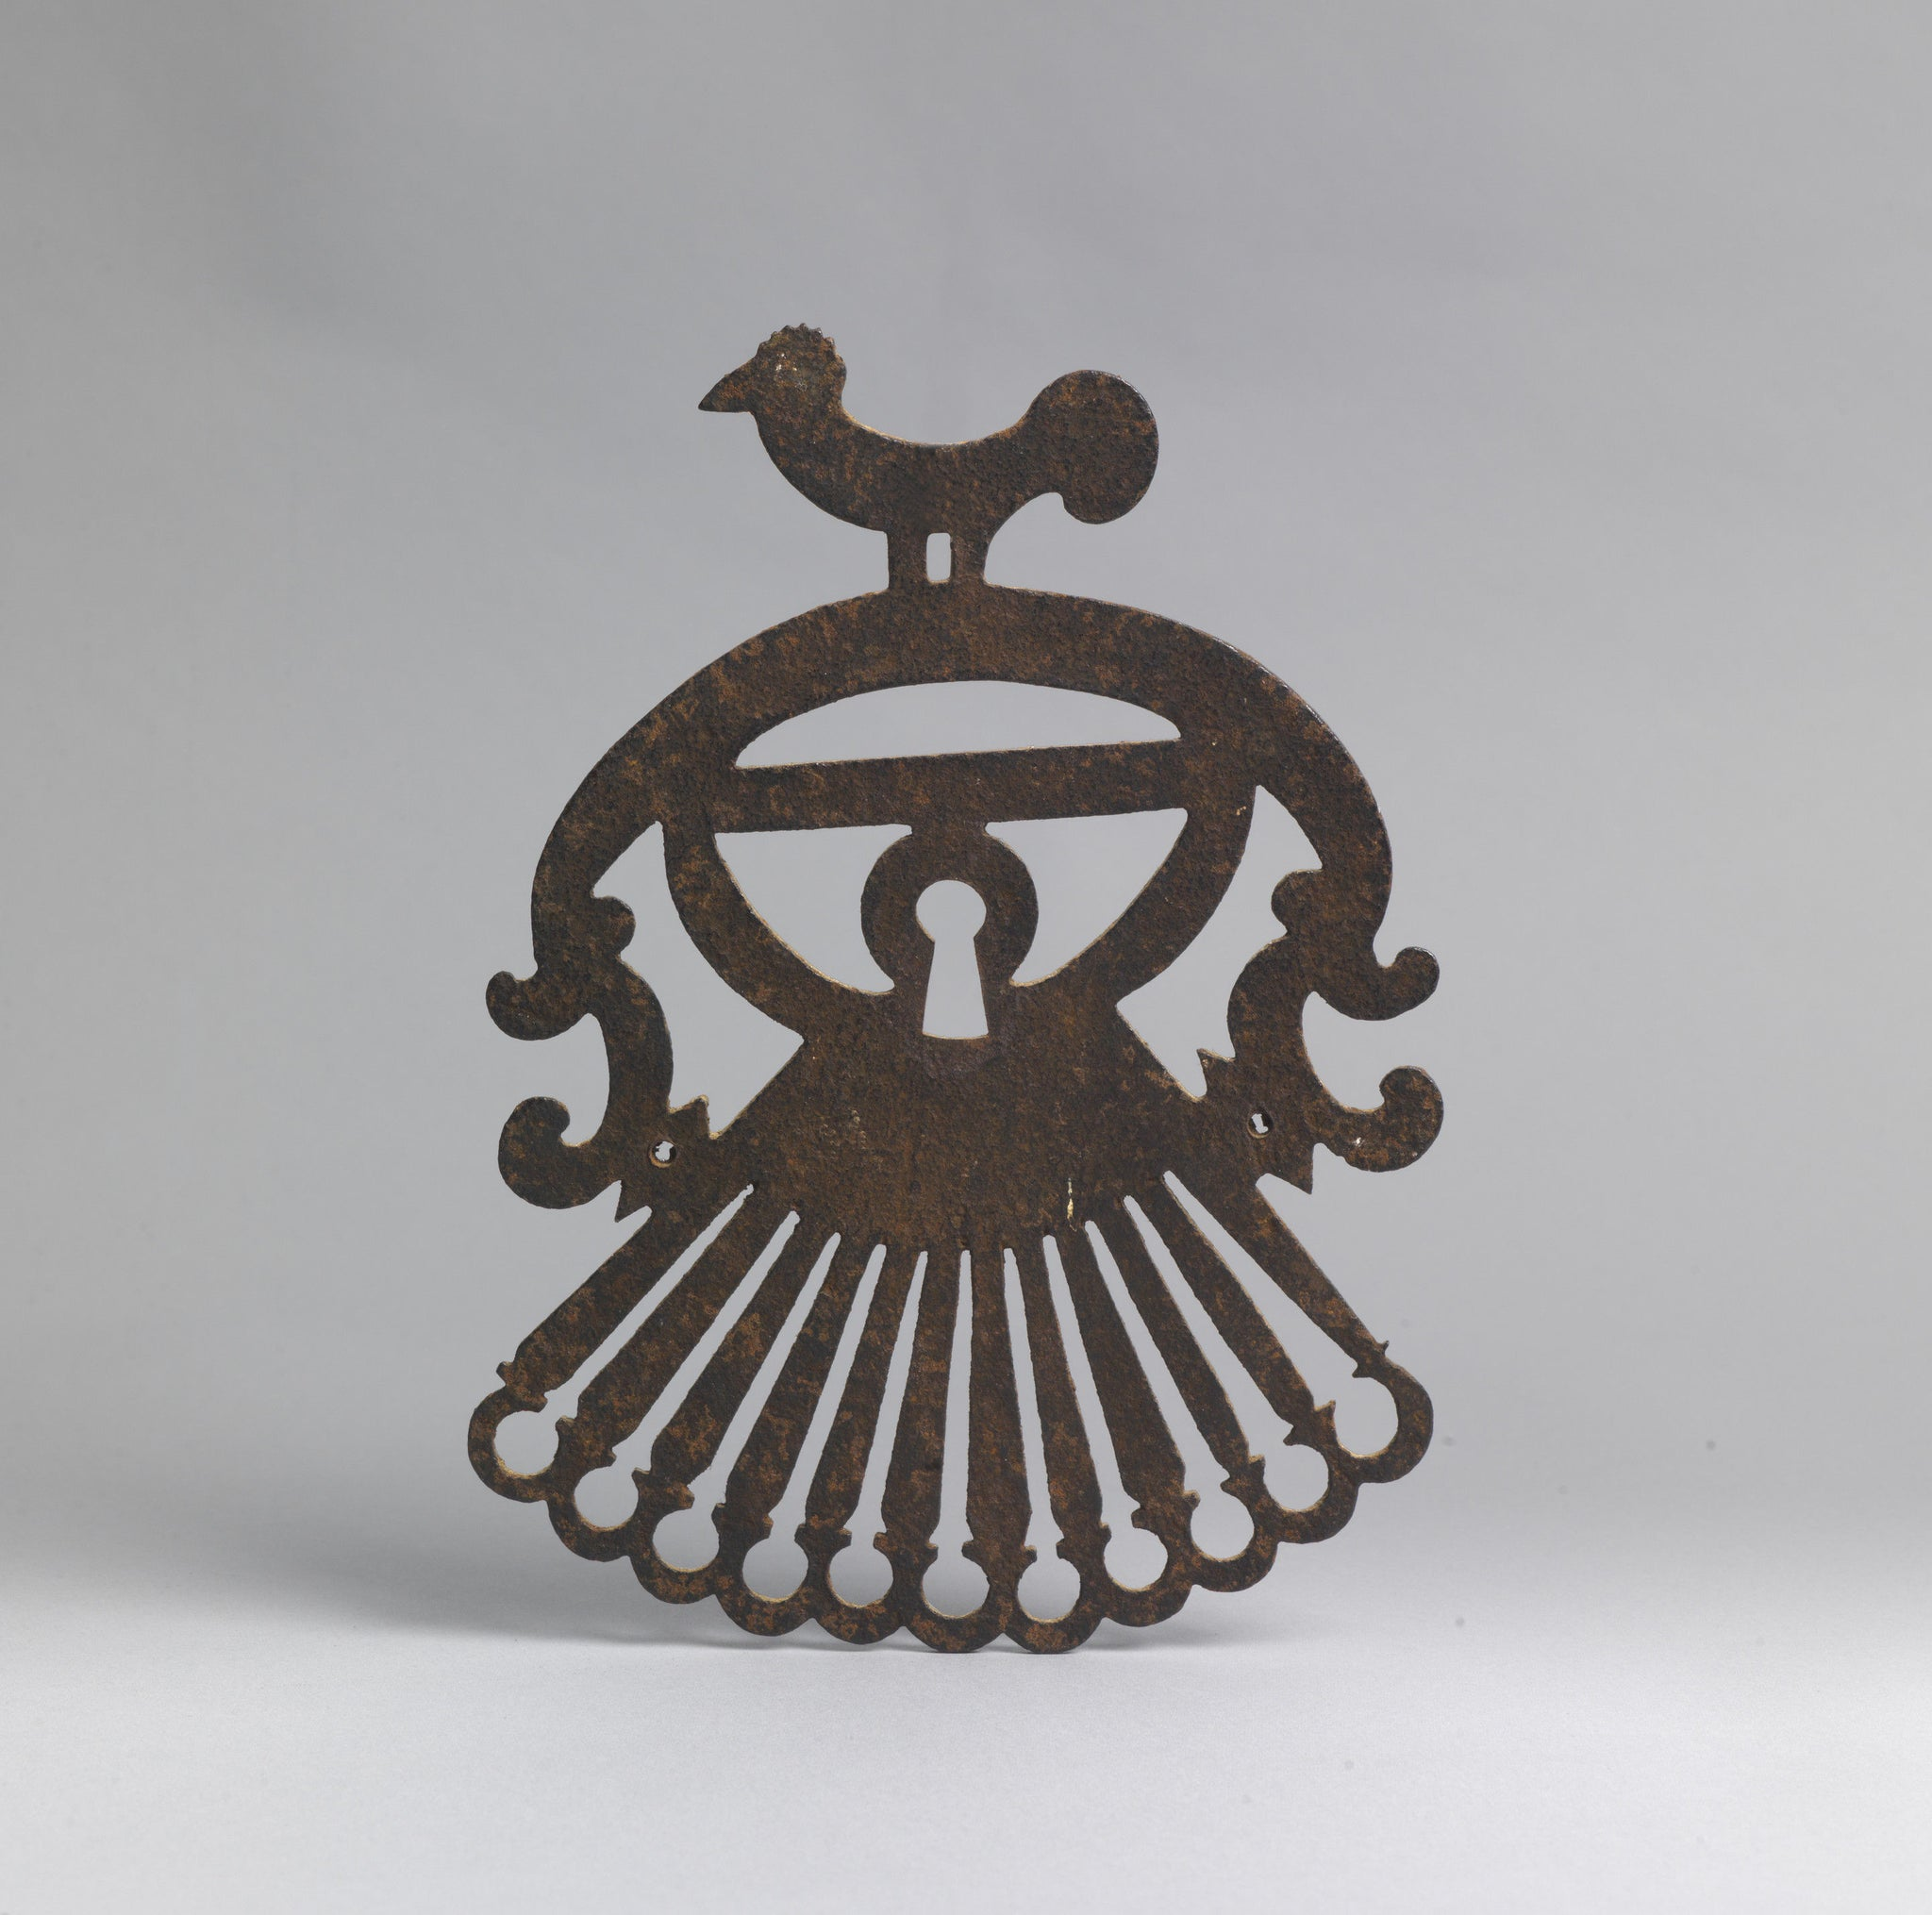 Large Graphic Escutcheon With Stylised Bird Cresting